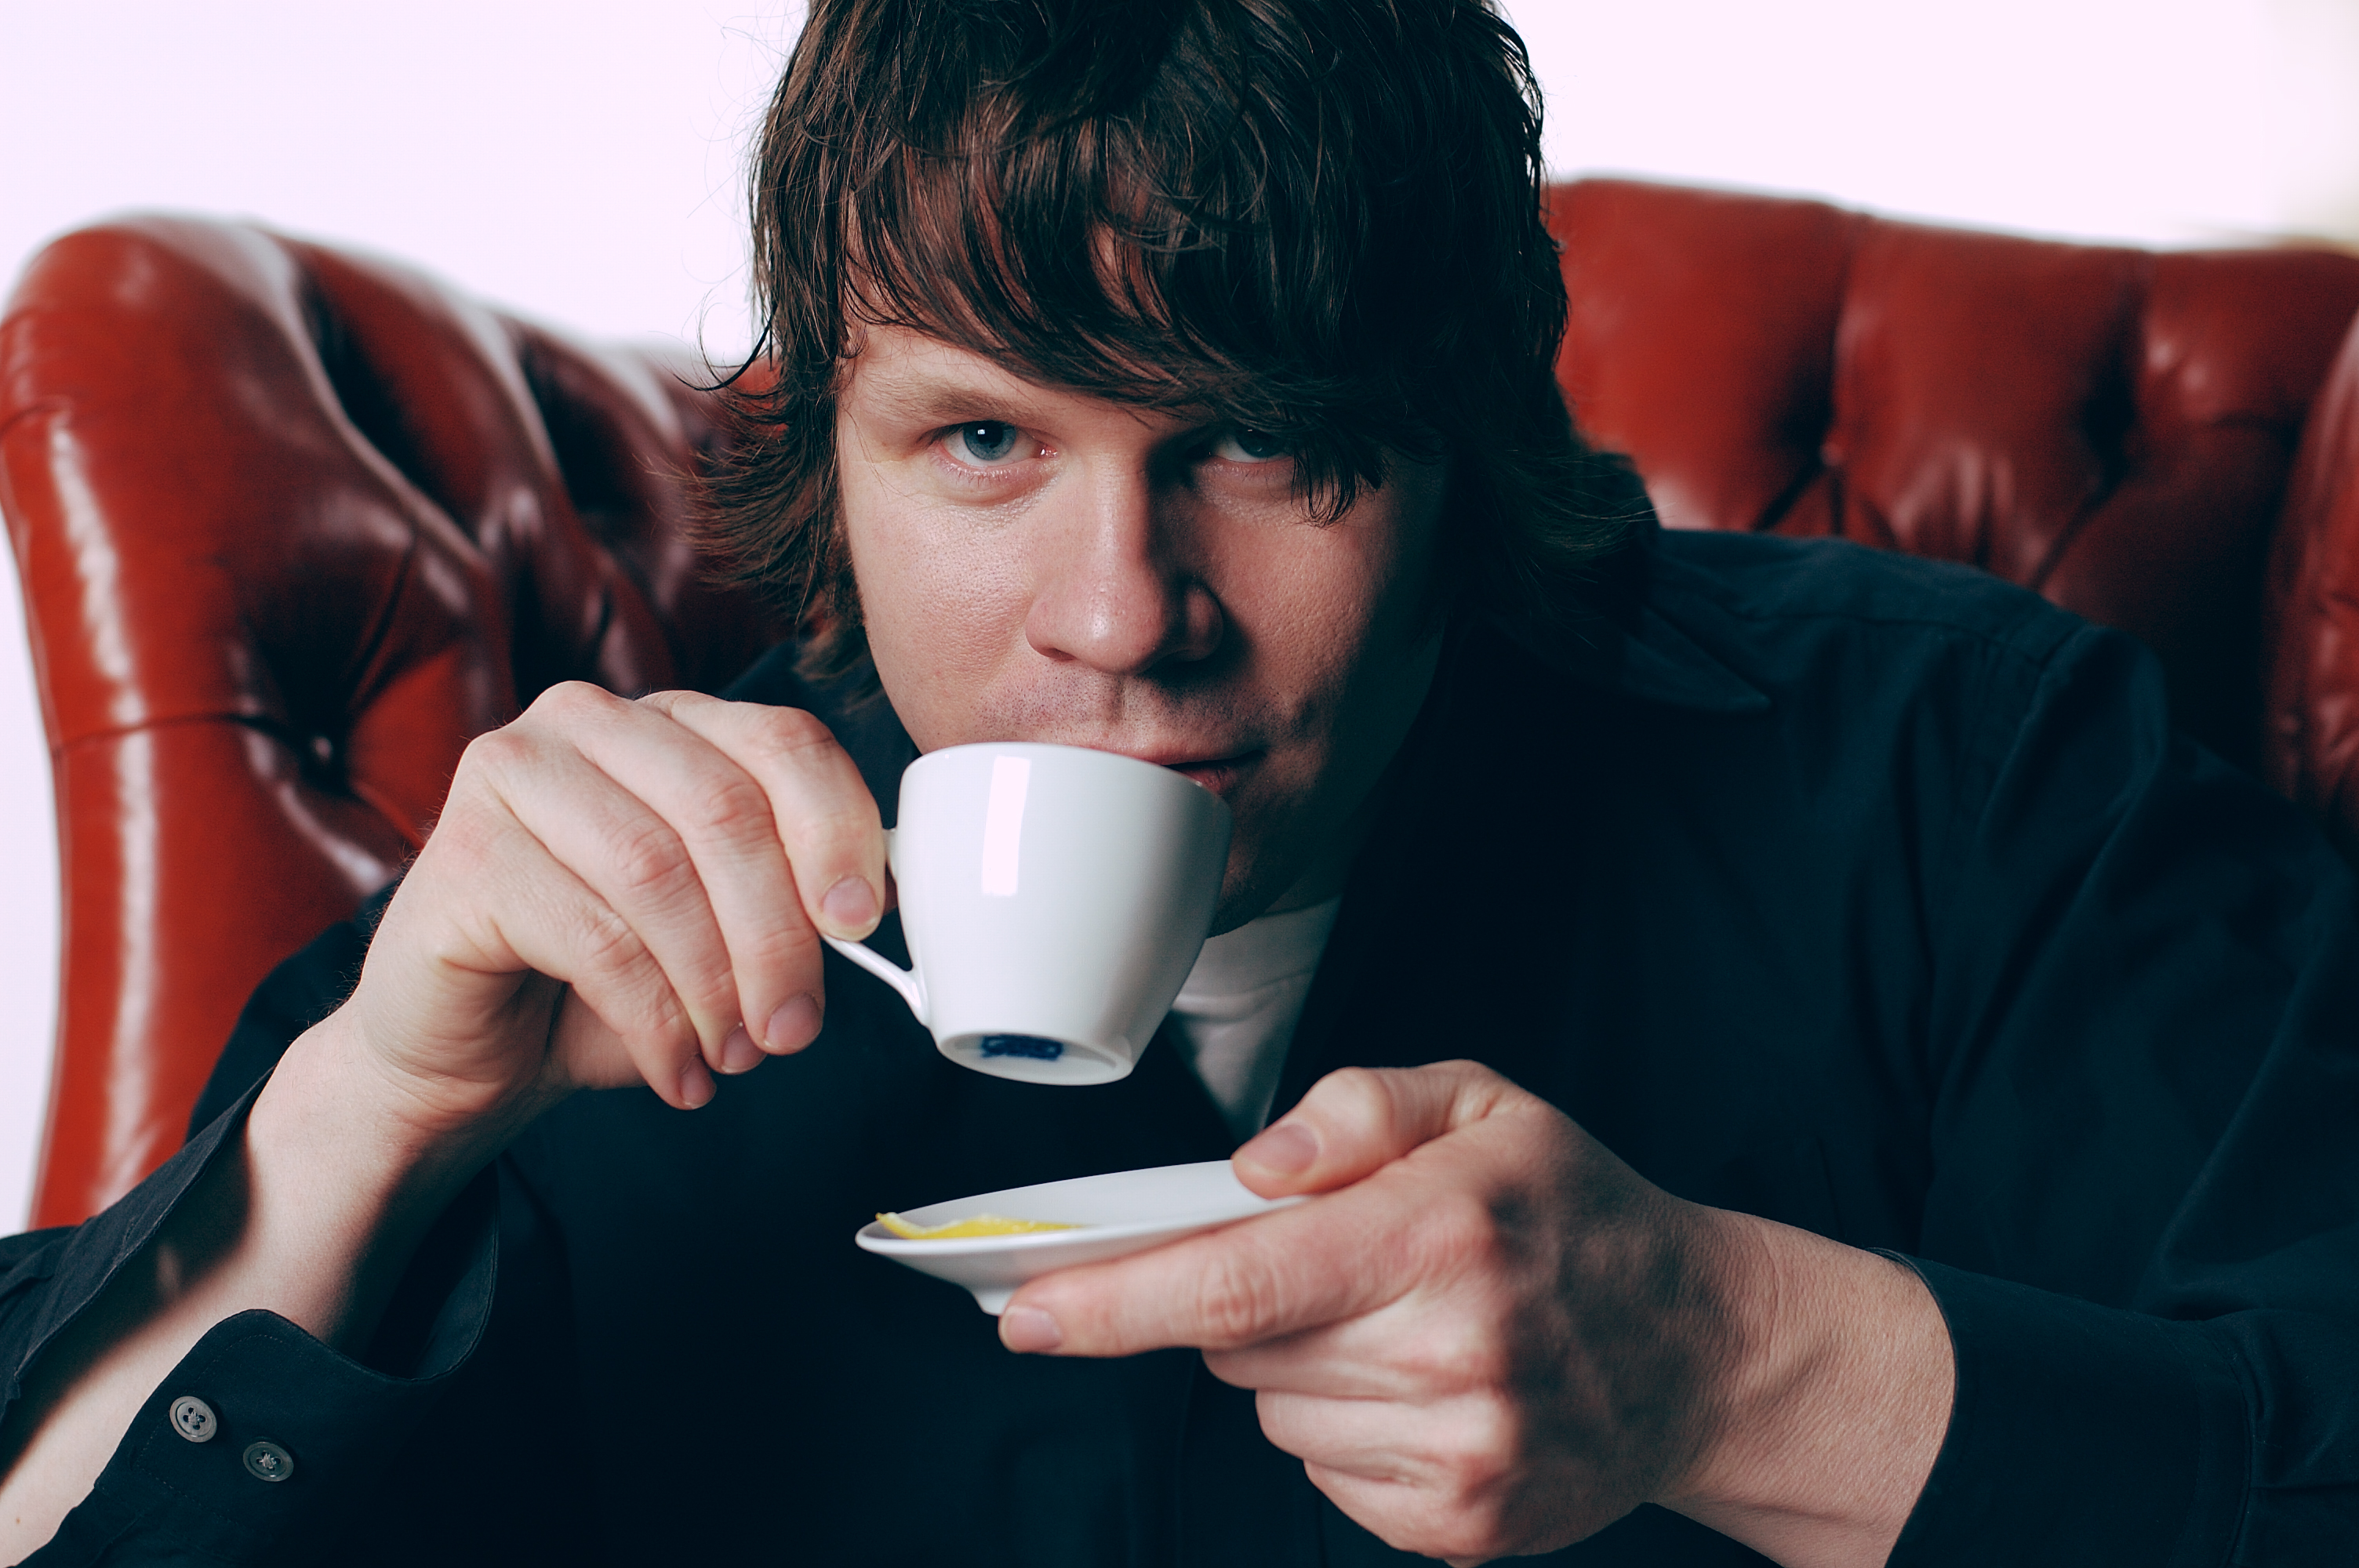 Brad Peterson drinking coffee during a music video film-shoot